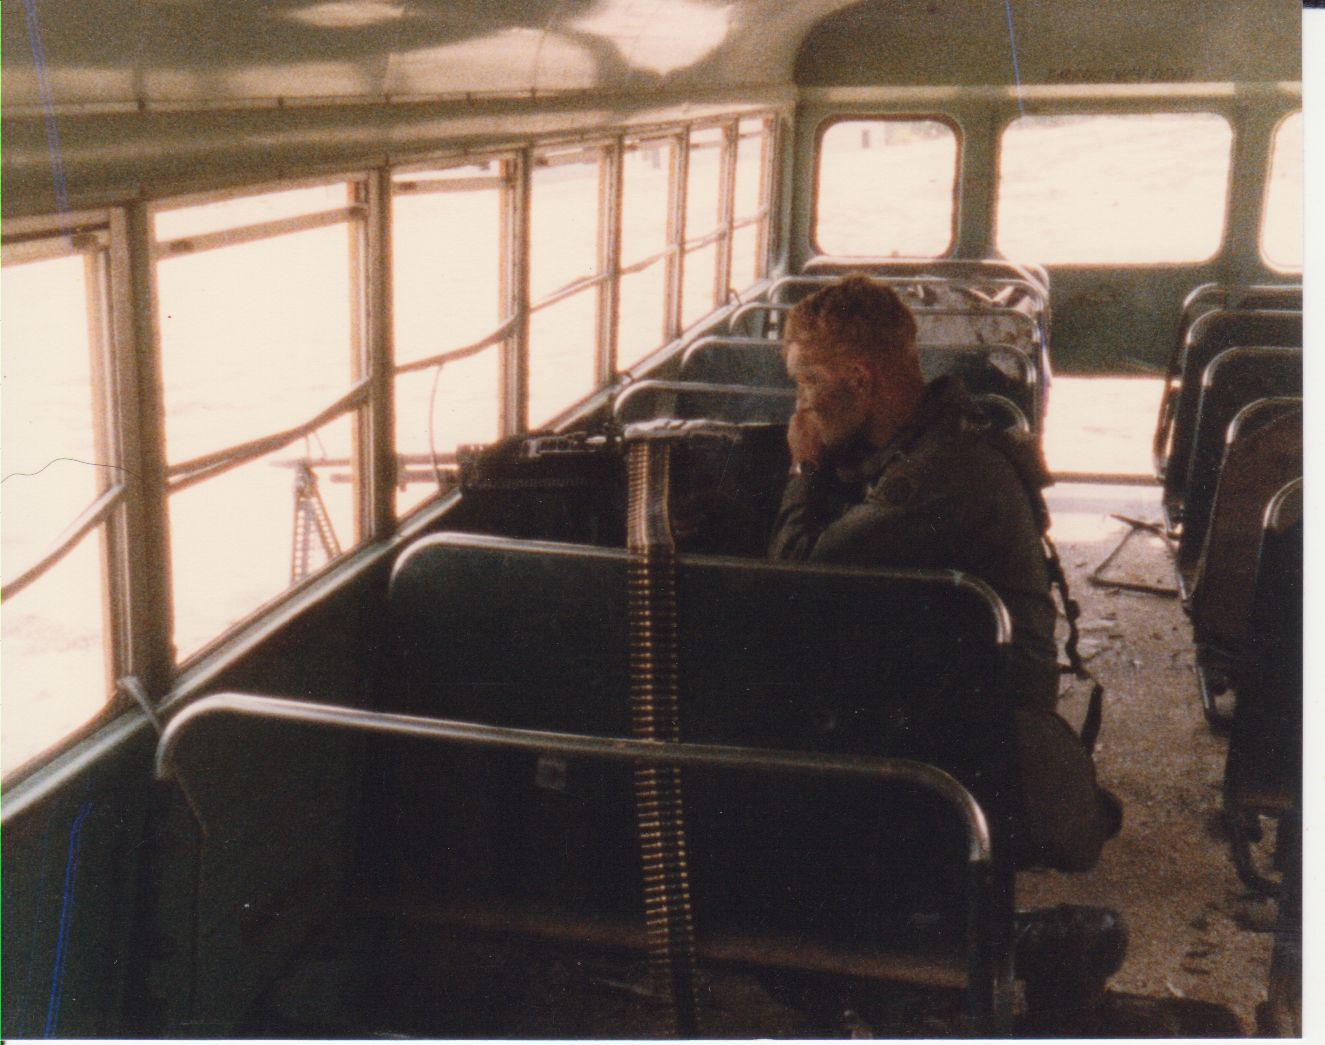 Firing position inside school bus at MOUT city.